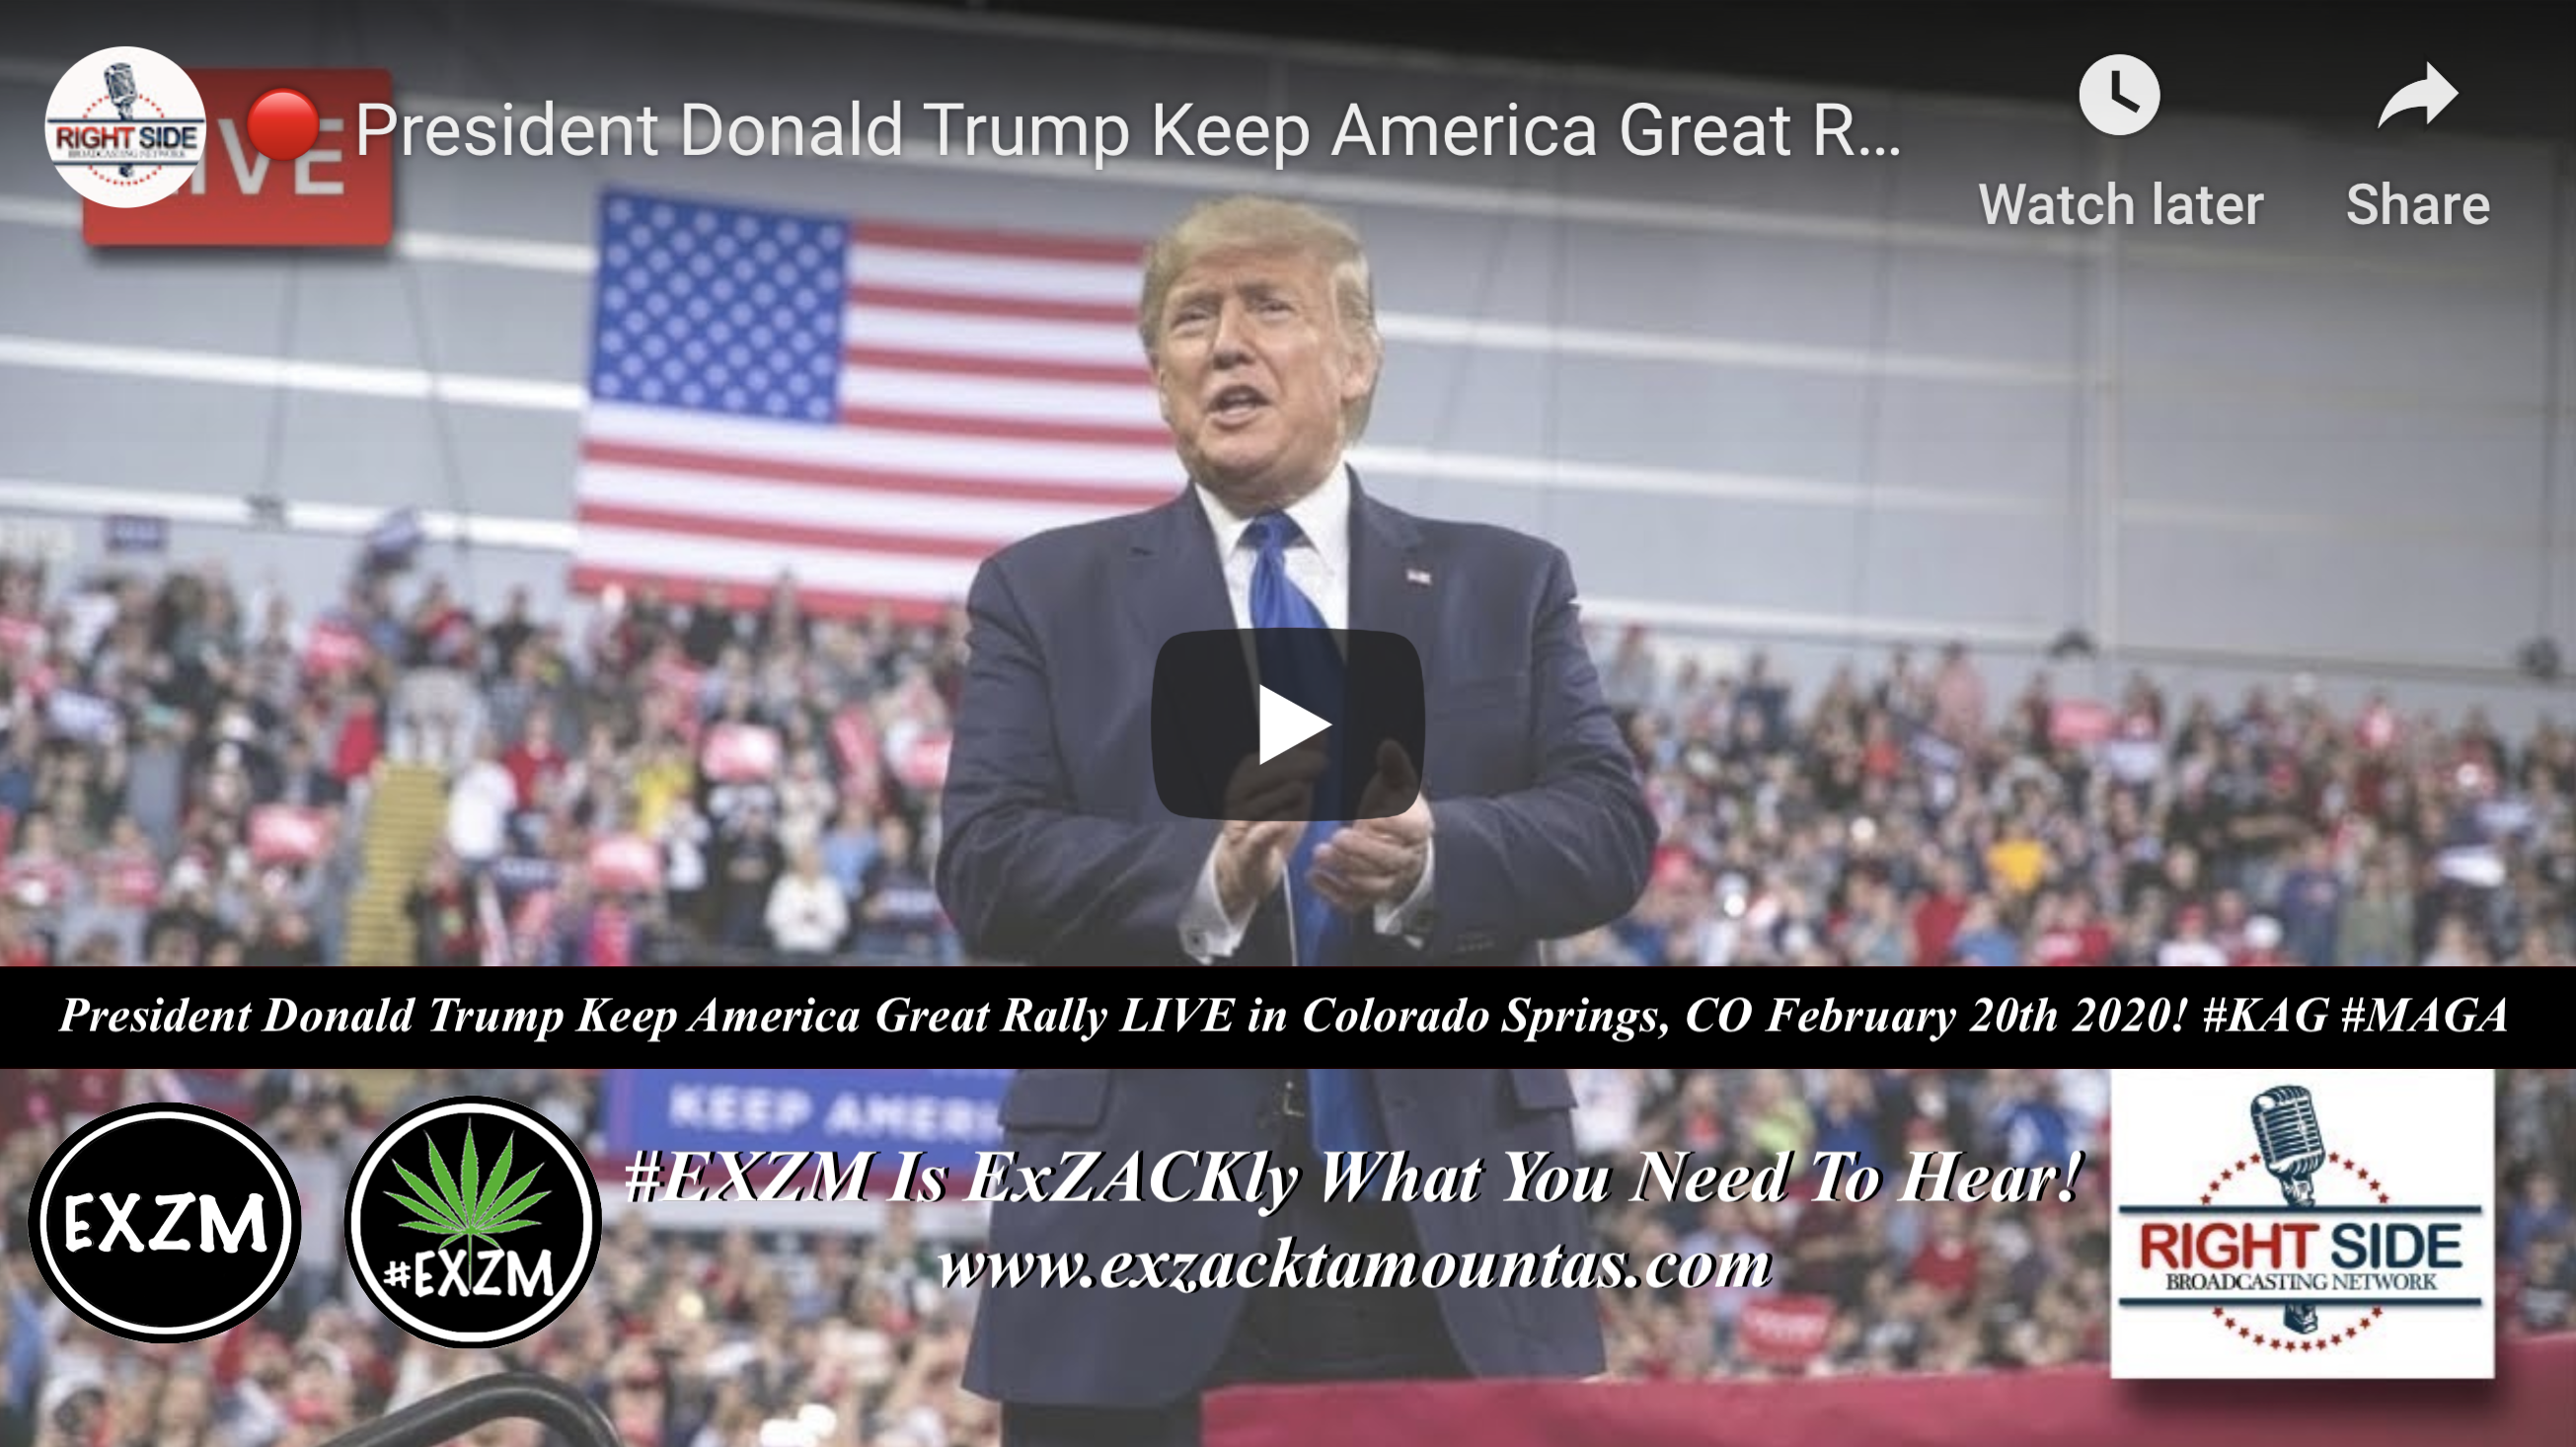 Donald Trump KAG MAGA Colorado Springs, CO 2 20 2020